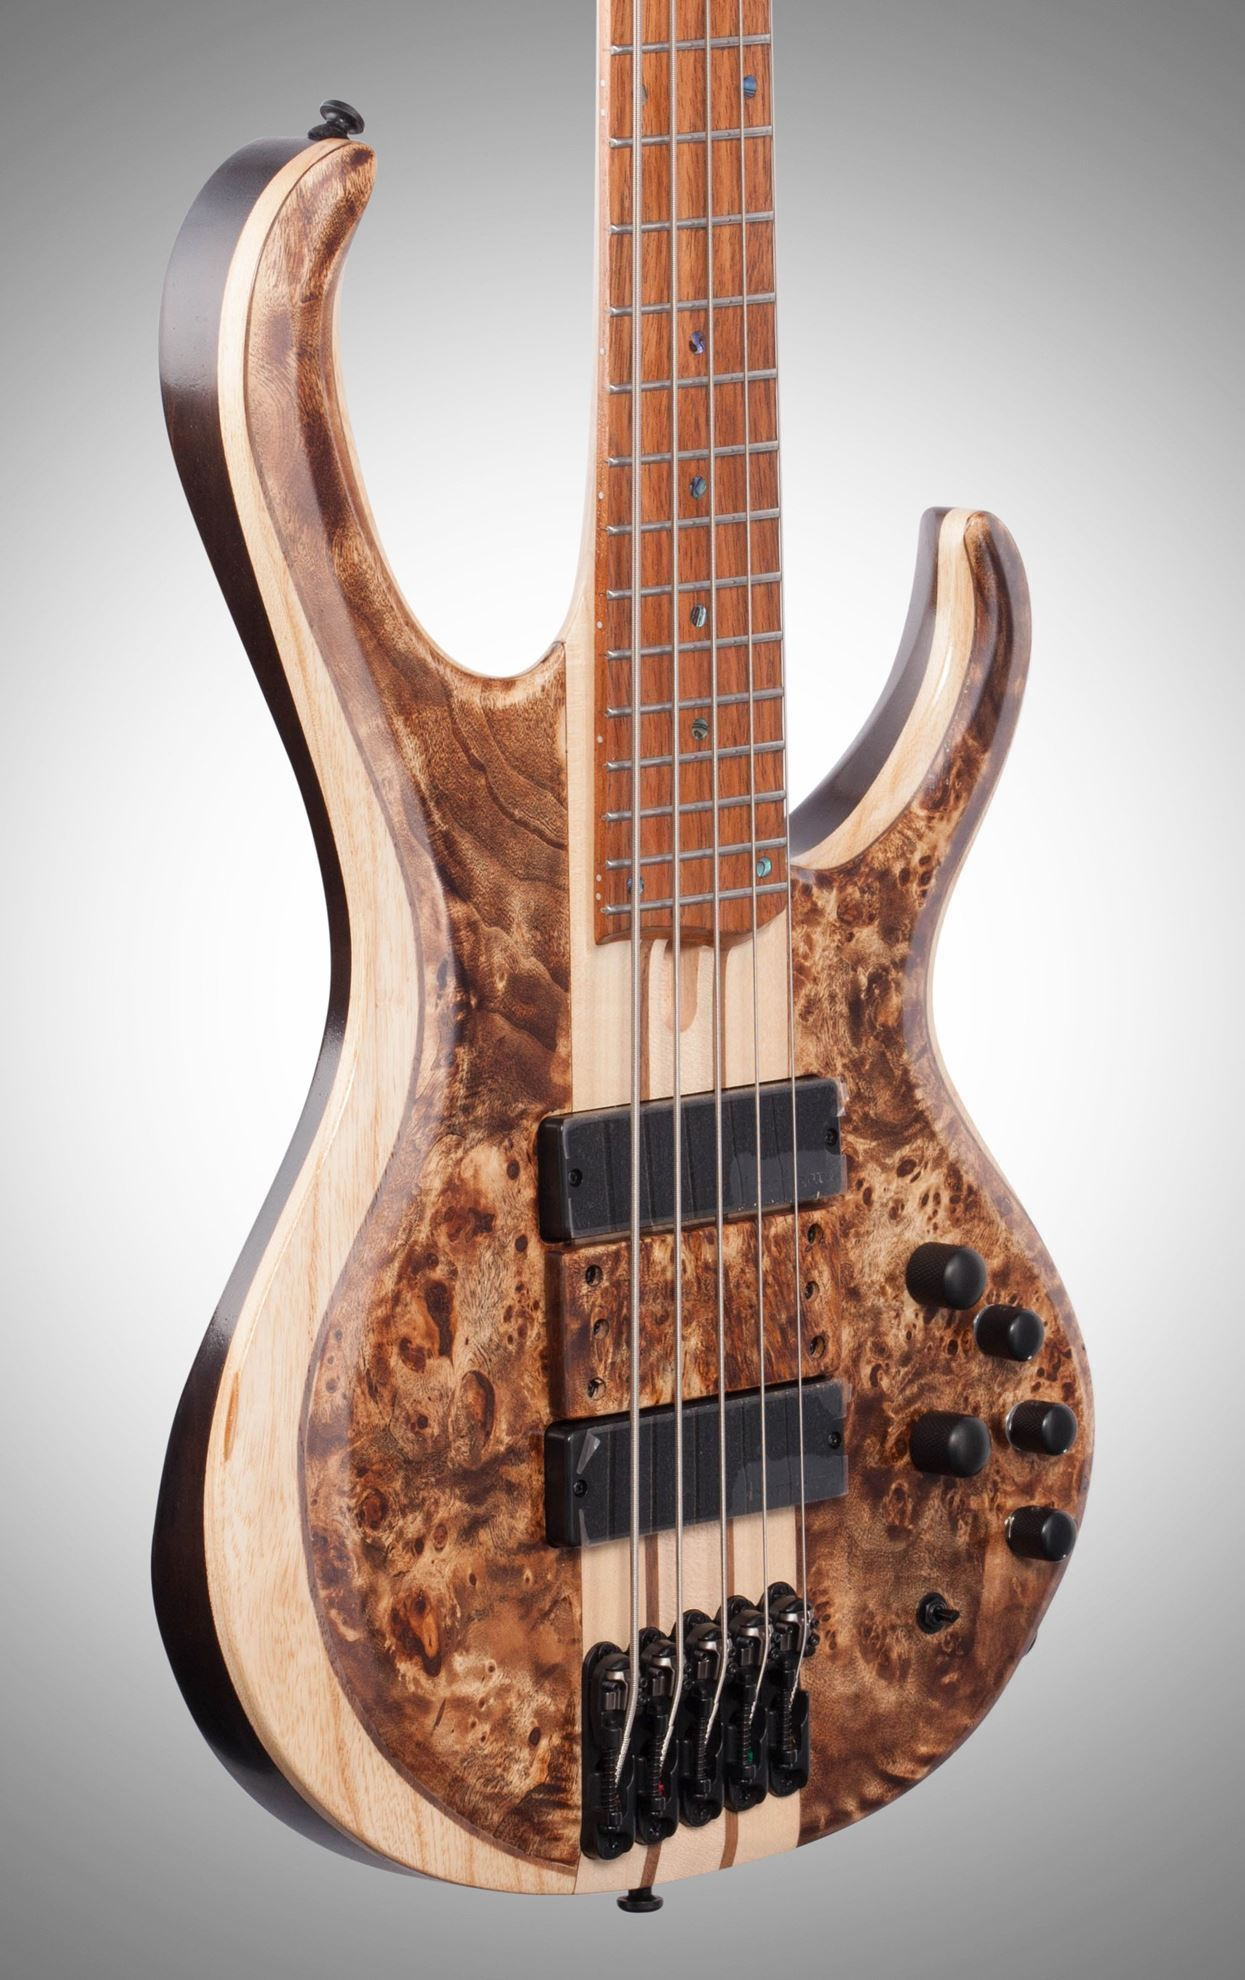 ibanez btb845v 5 string bass guitar stained low gloss antique brown perth mega music online. Black Bedroom Furniture Sets. Home Design Ideas